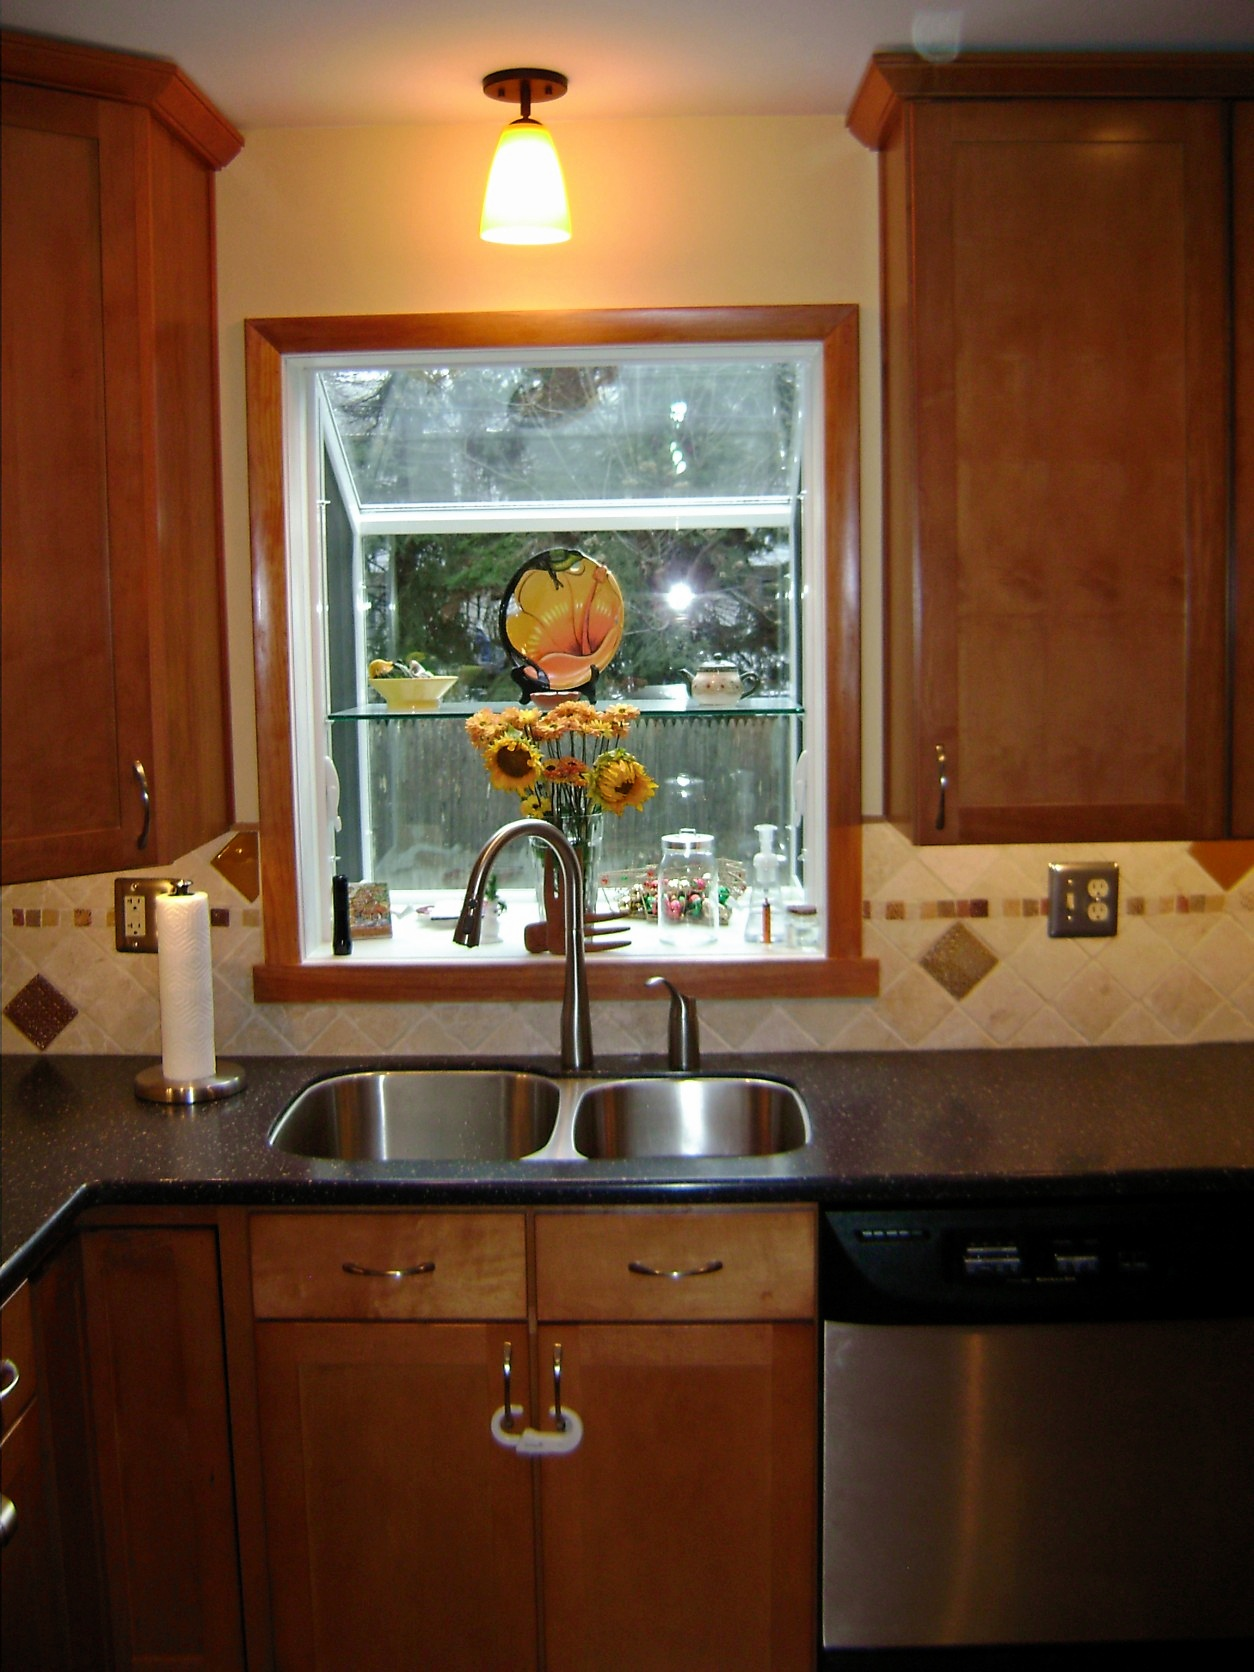 This Garden Window Was The Hinge Point Of This Kitchen